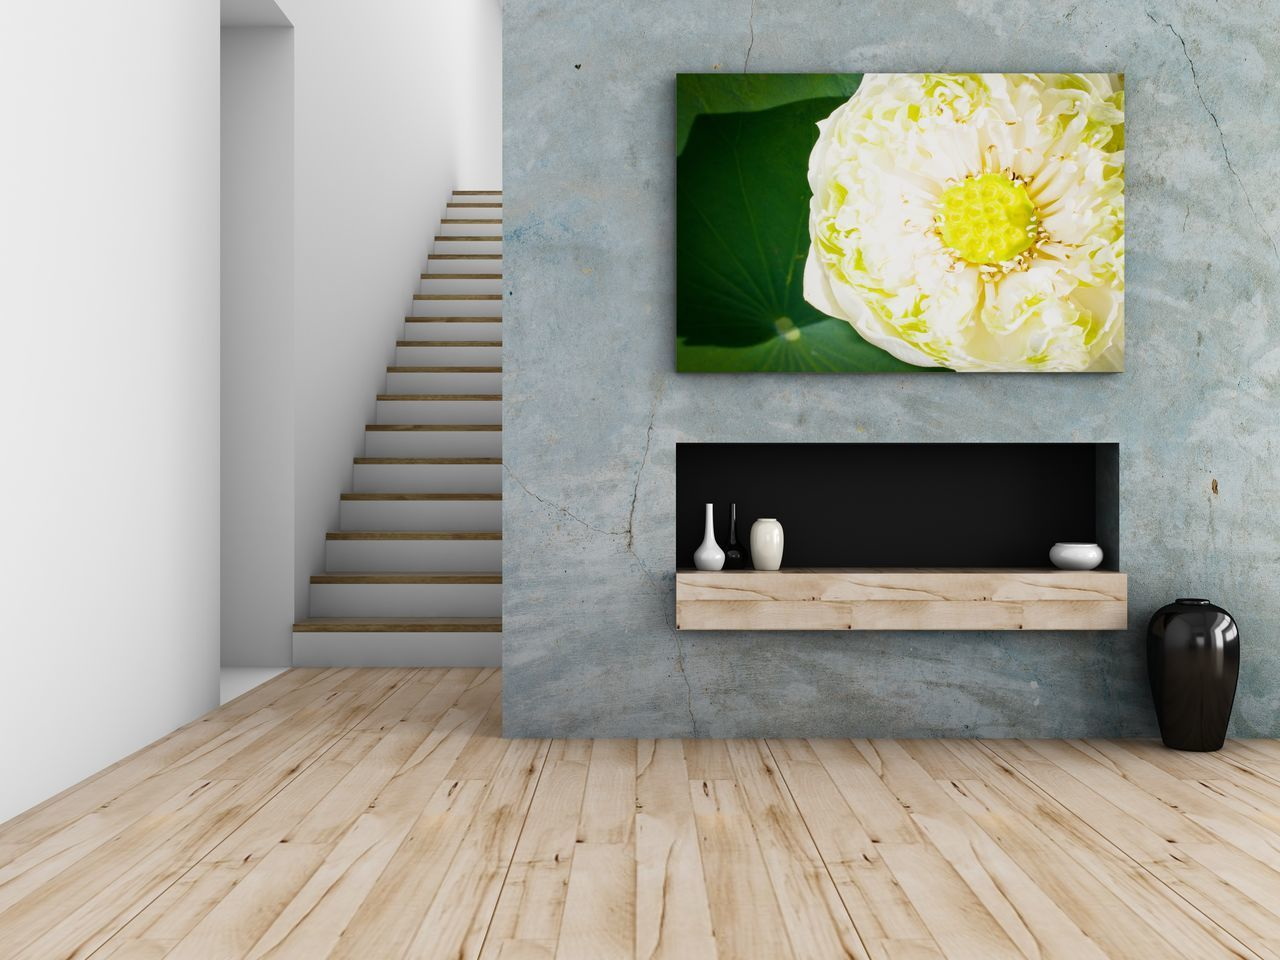 Close-up Day Design Flower Freshness Home Home Showcase Interior House Indoors  Interior Lifestyle Living Luxury Modern Nature No People Shelf Sparse Stair